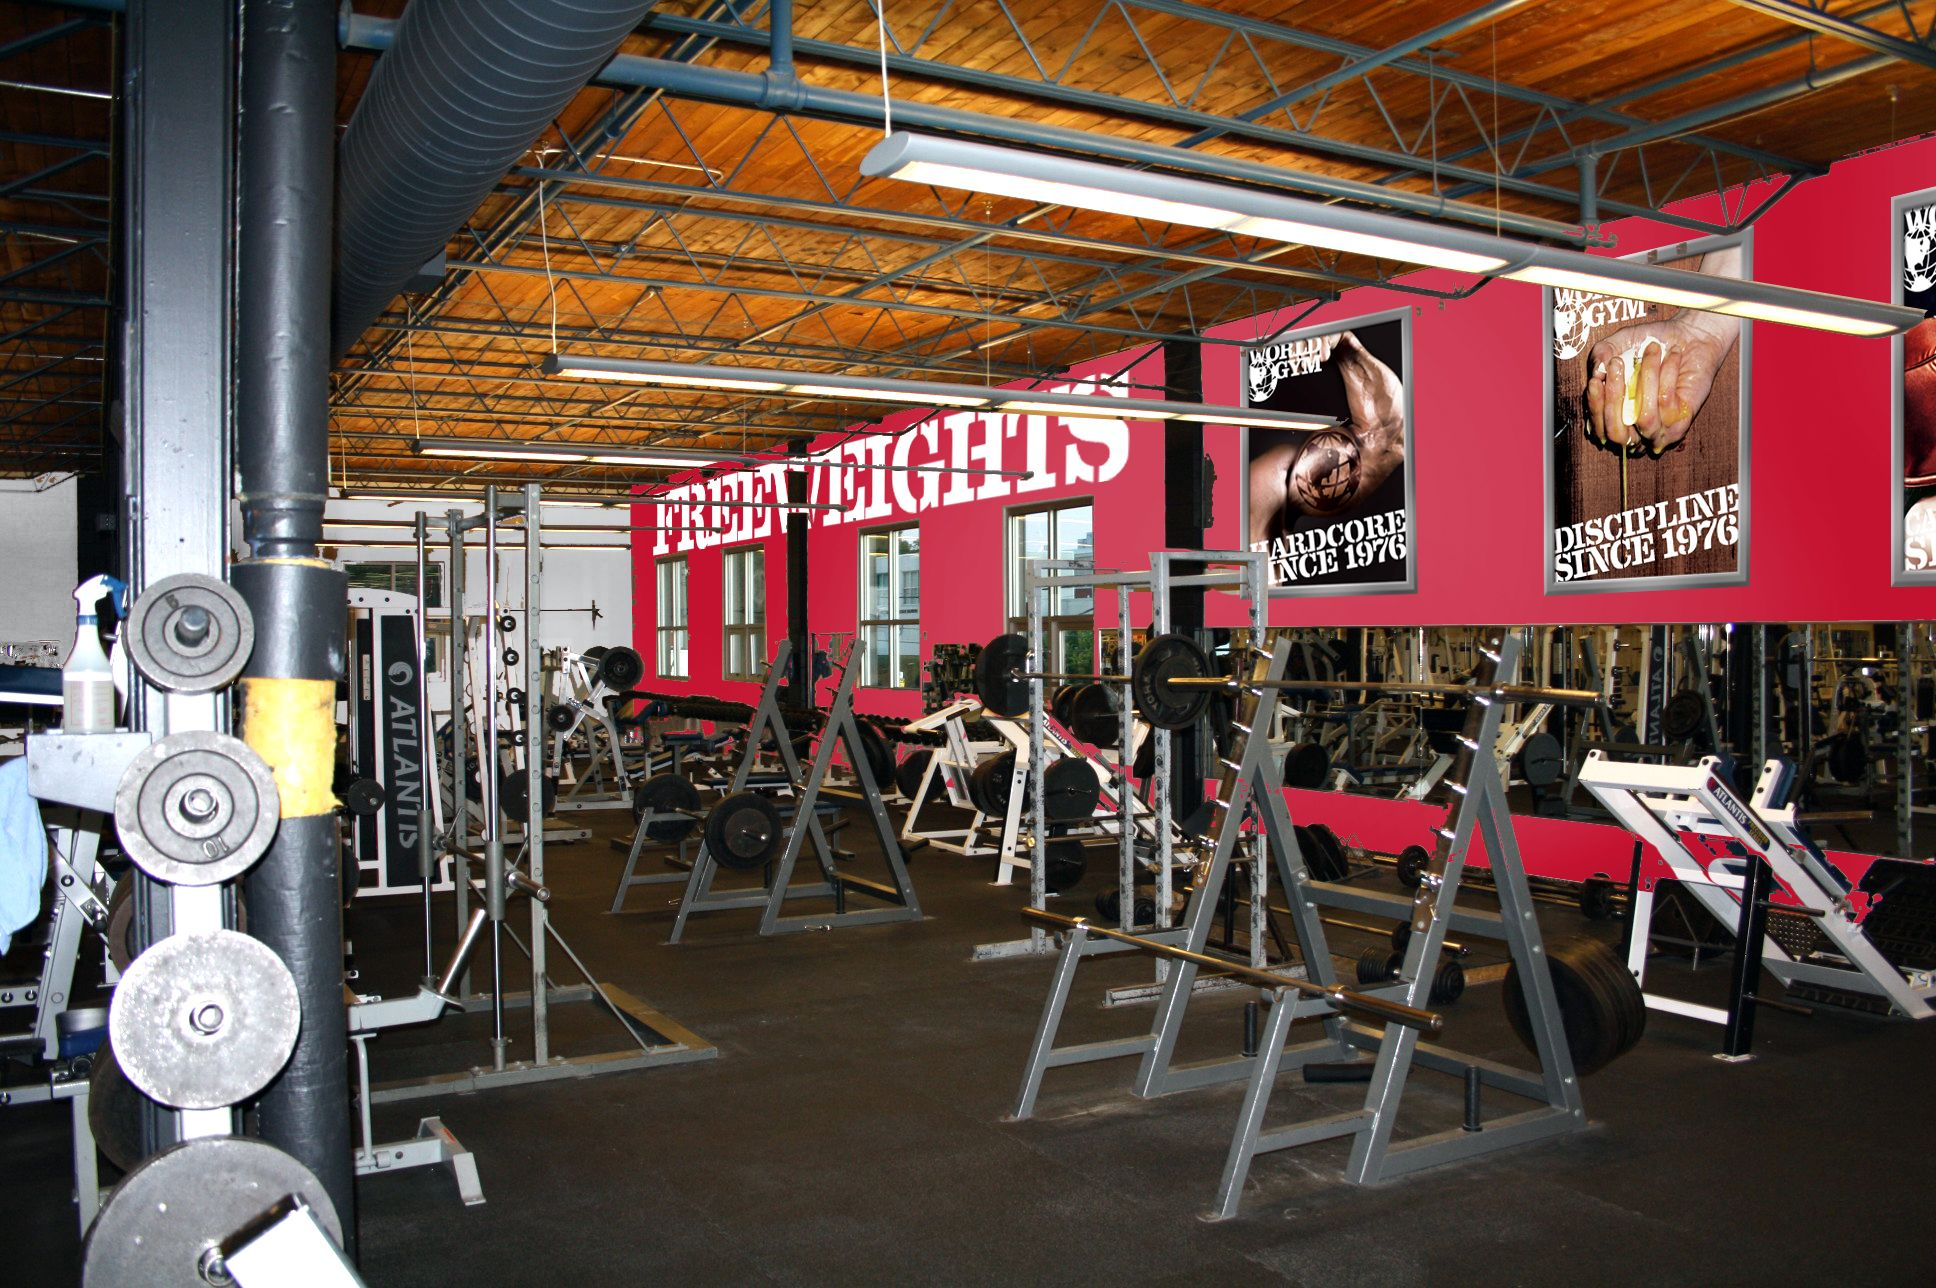 World Gym Was Made Famous By Founder Joe Gold Who Garnered A Following Of Muscled Celebrities Such As Arnold Schwa Arnold Schwarzenegger Schwarzenegger Arnold